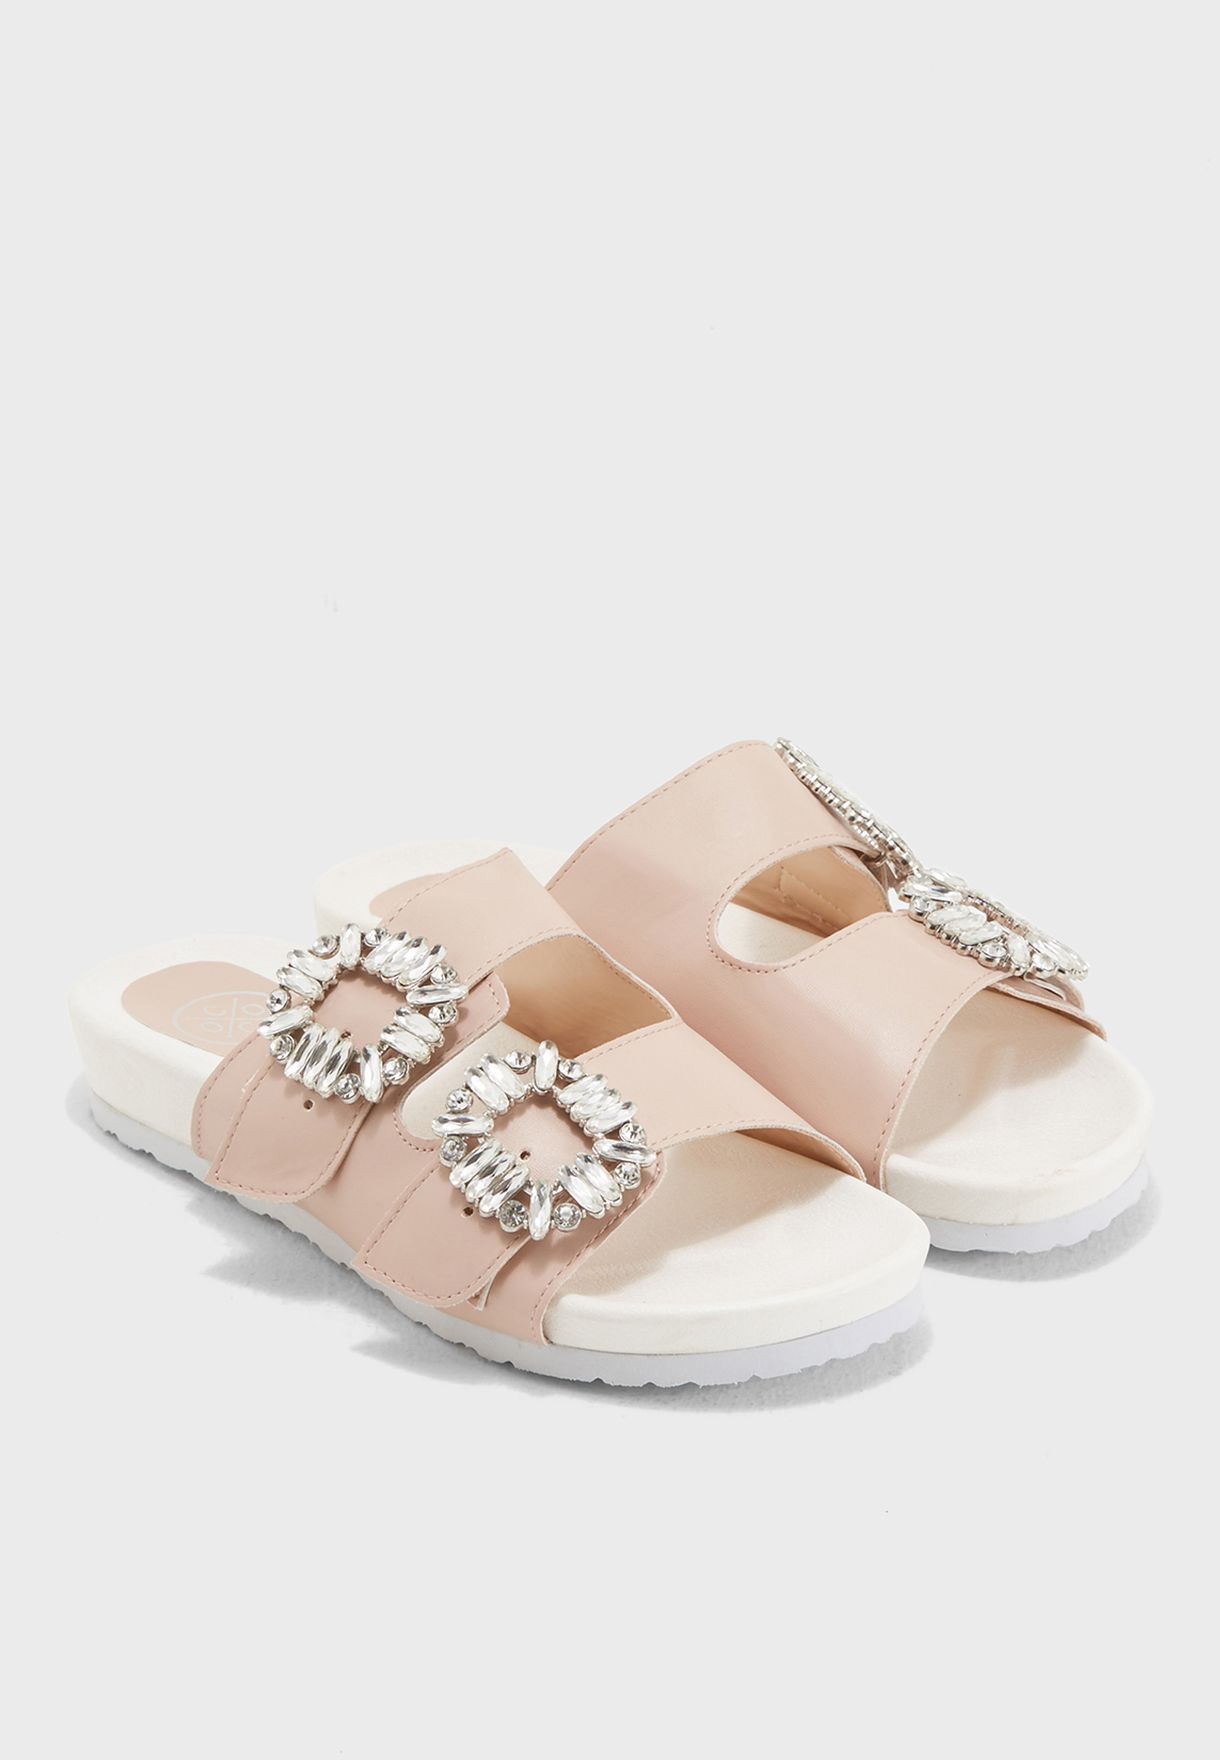 Solstice Embellished Two Strapped Sandal